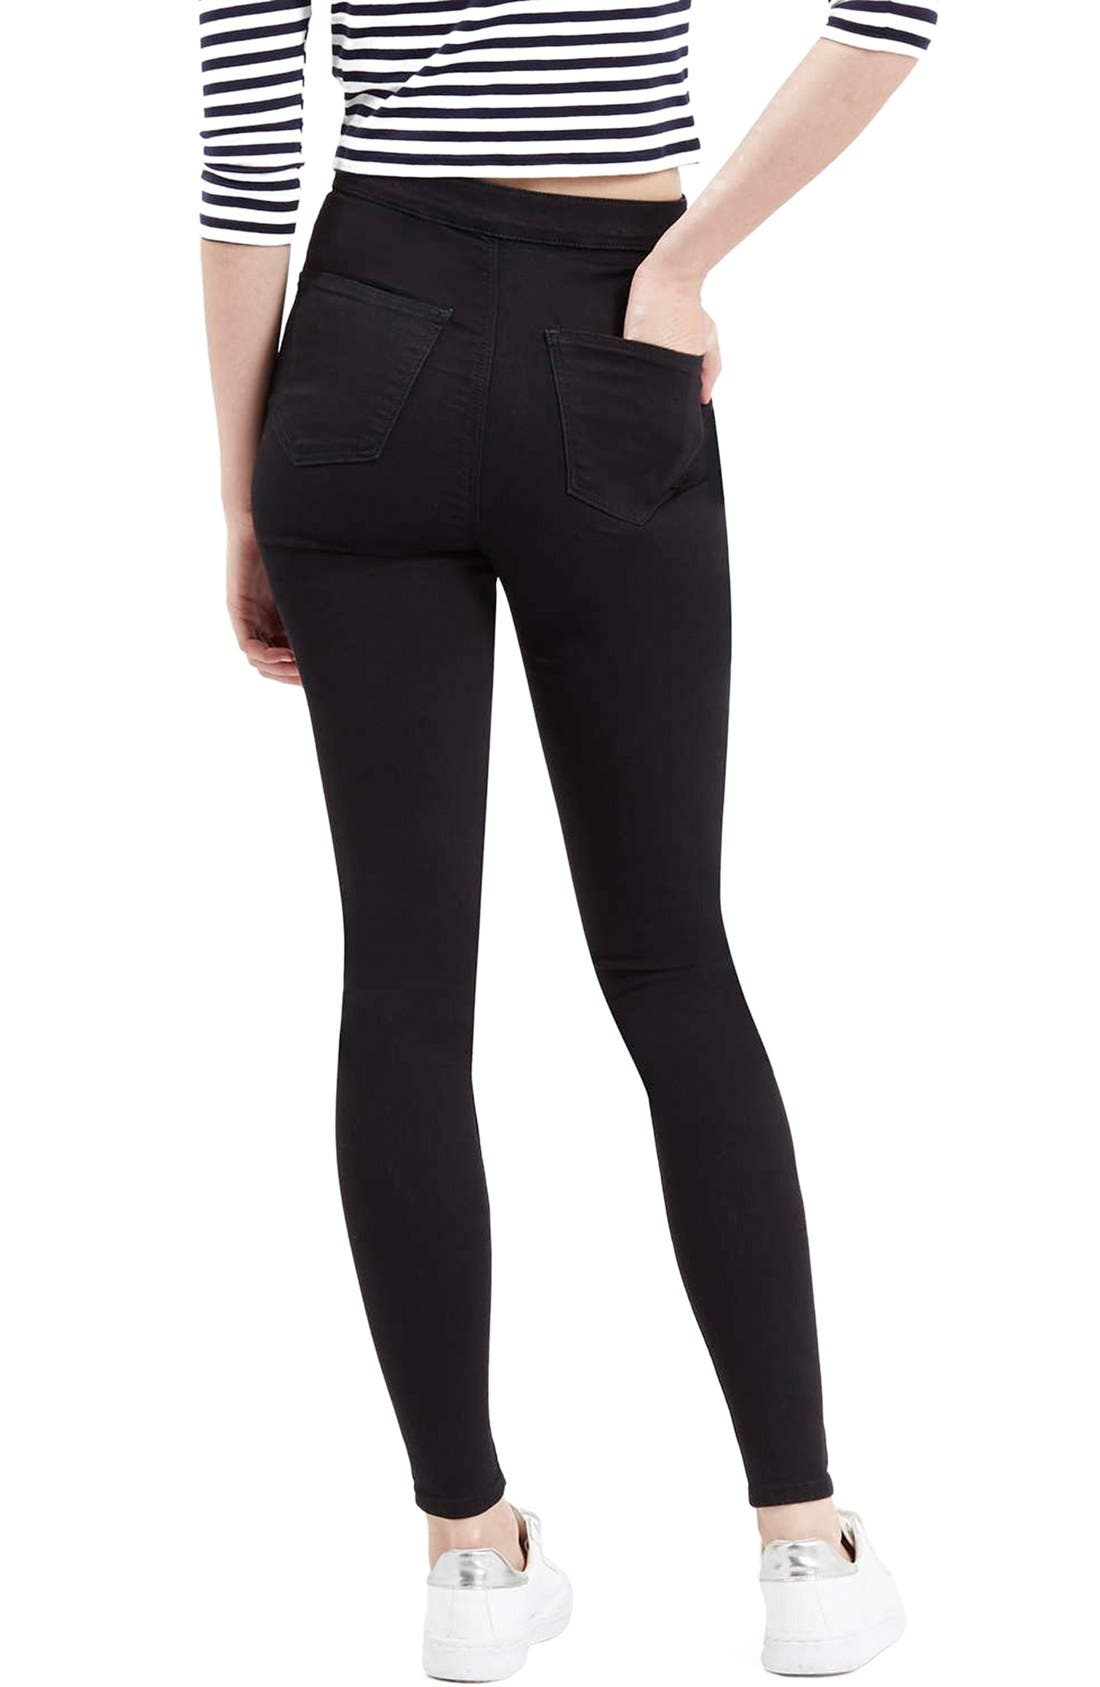 Moto 'Joni' High Rise Skinny Jeans,                             Alternate thumbnail 2, color,                             001